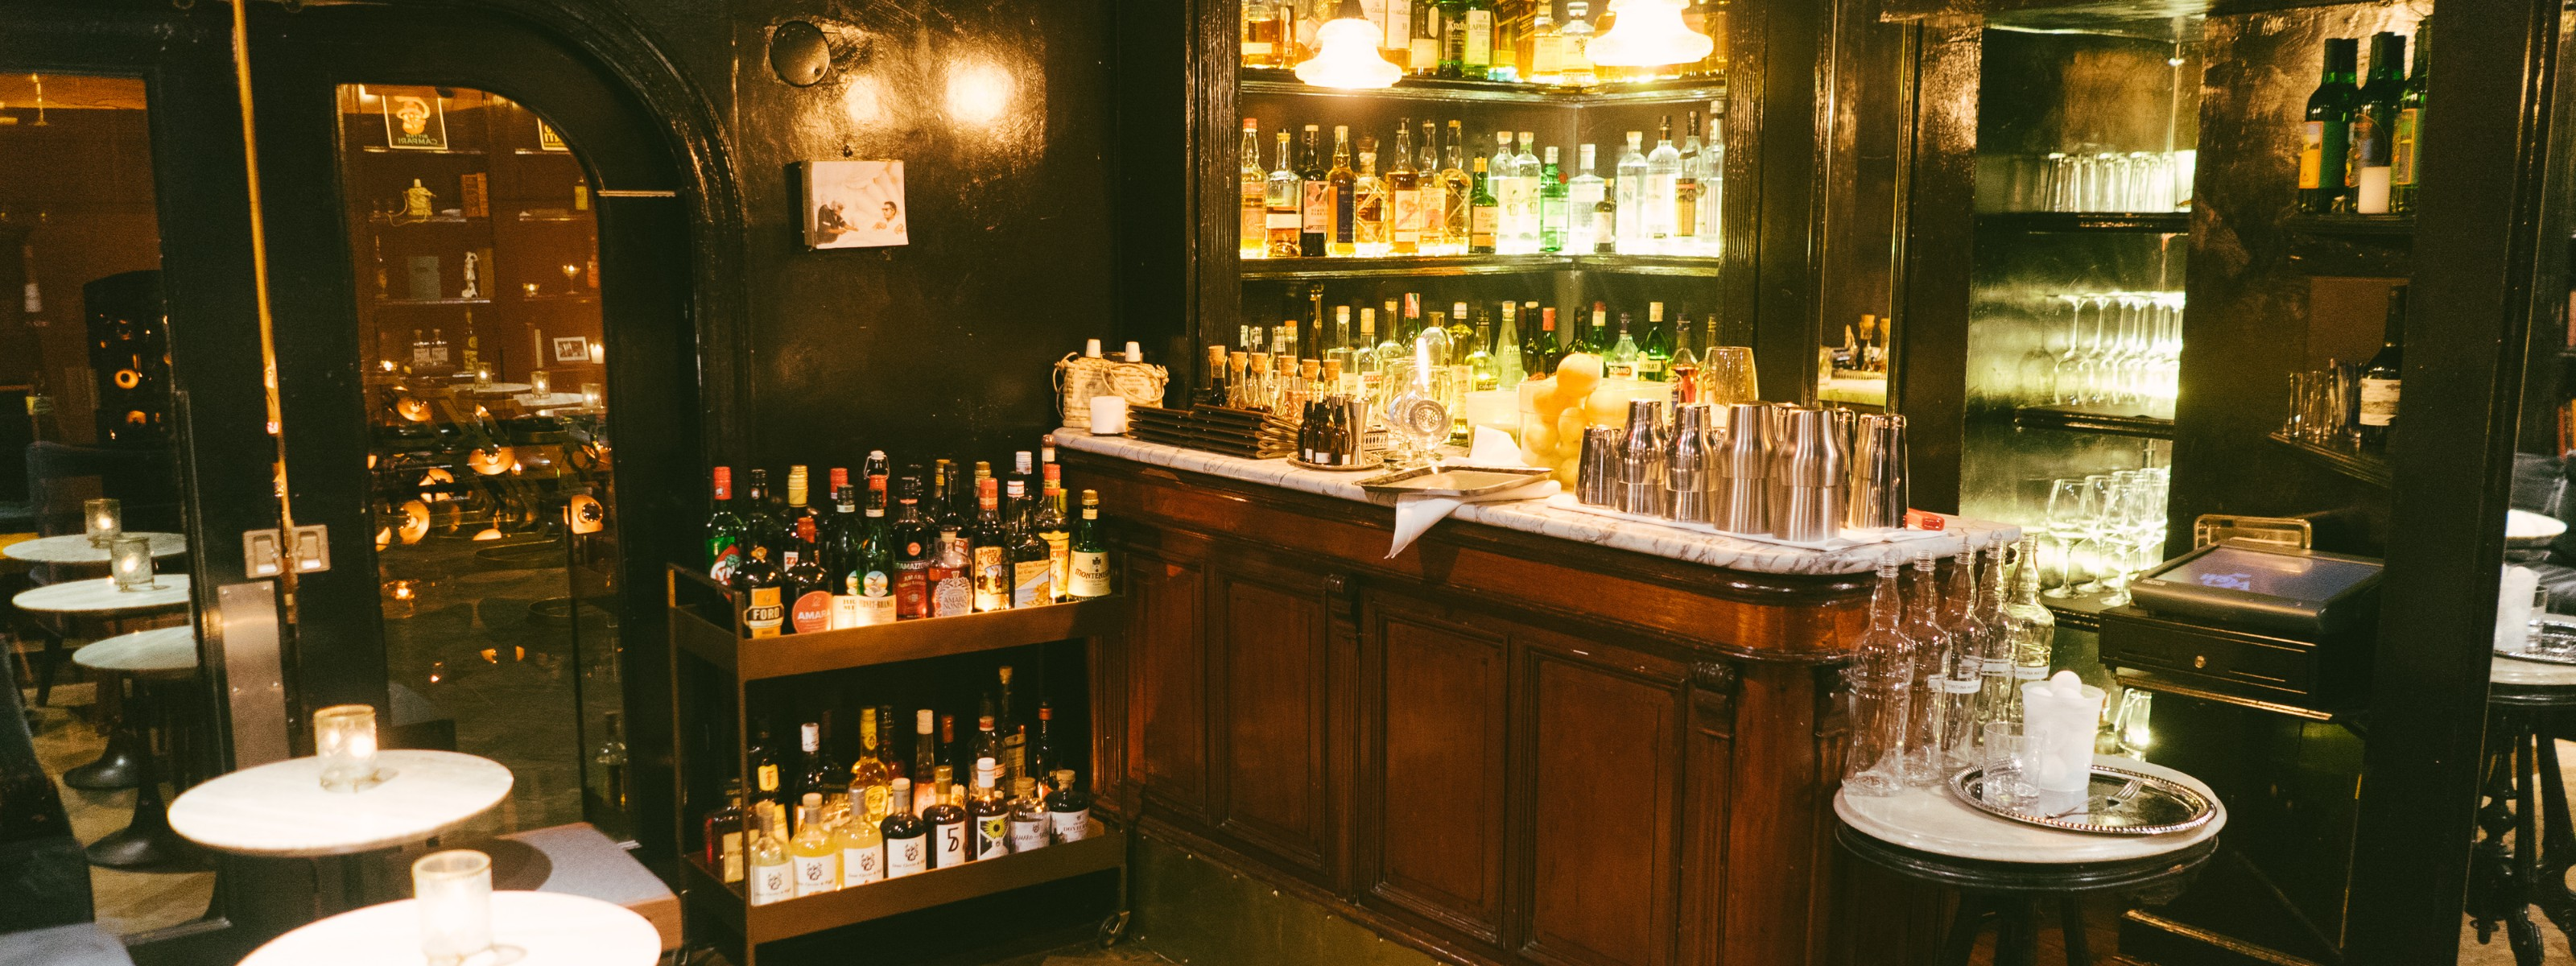 The Best Cocktail Bars For Special Occasions - New York ...